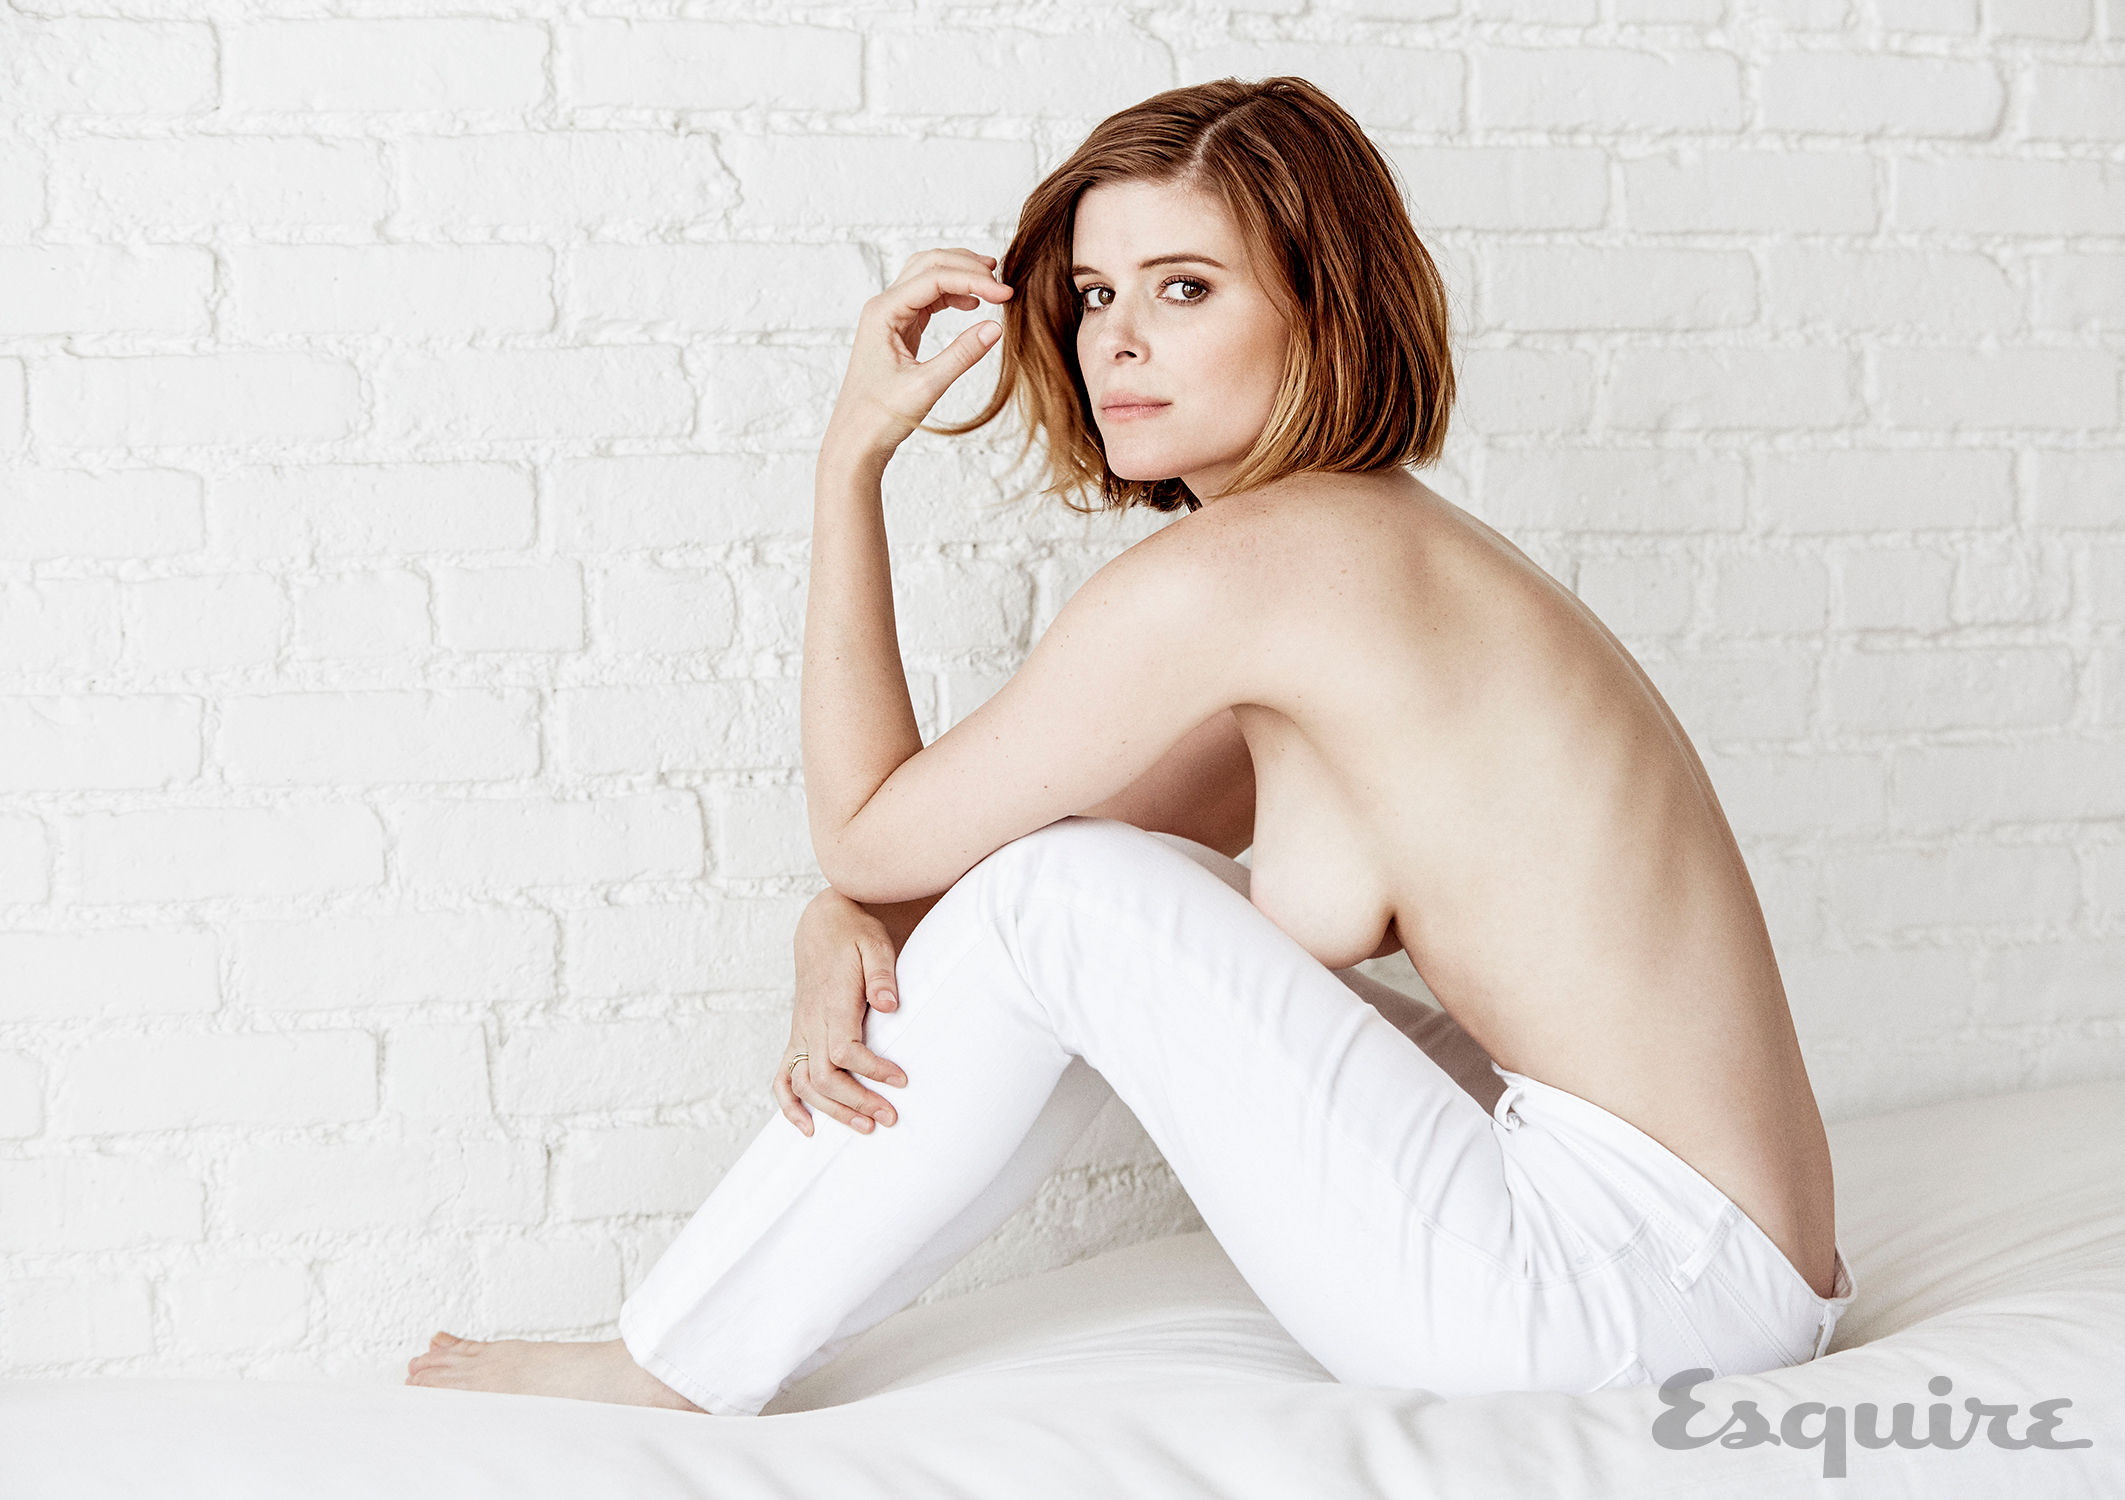 Nudes Kate Mara nude photos 2019